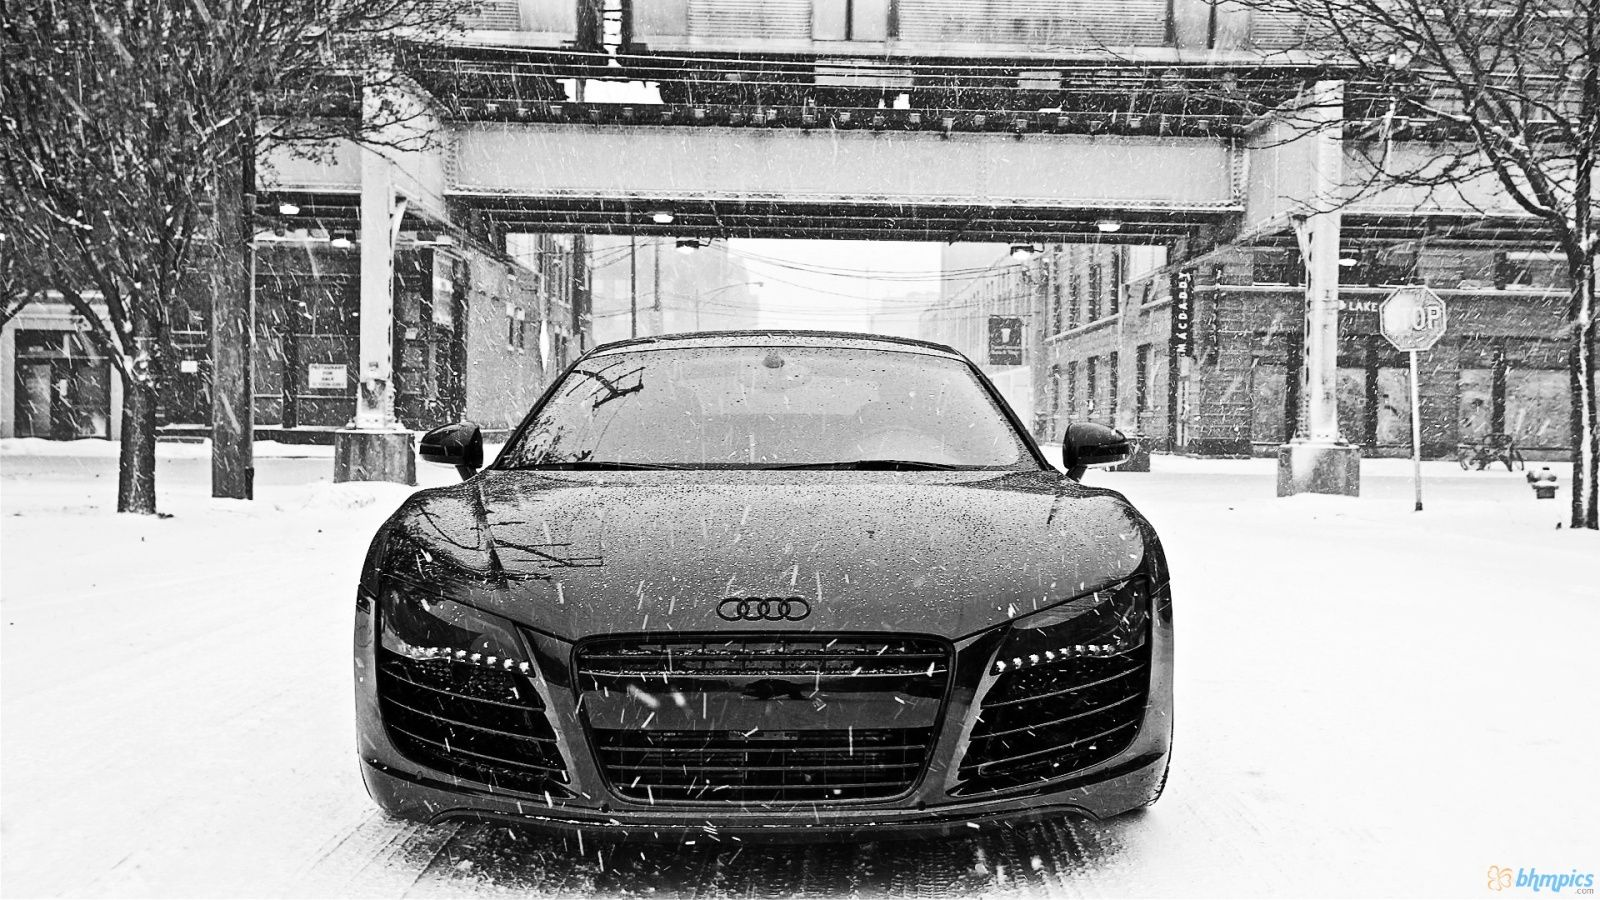 Audi R8 In The Snow Super Car Racing Dream Cars Sports Cars Luxury